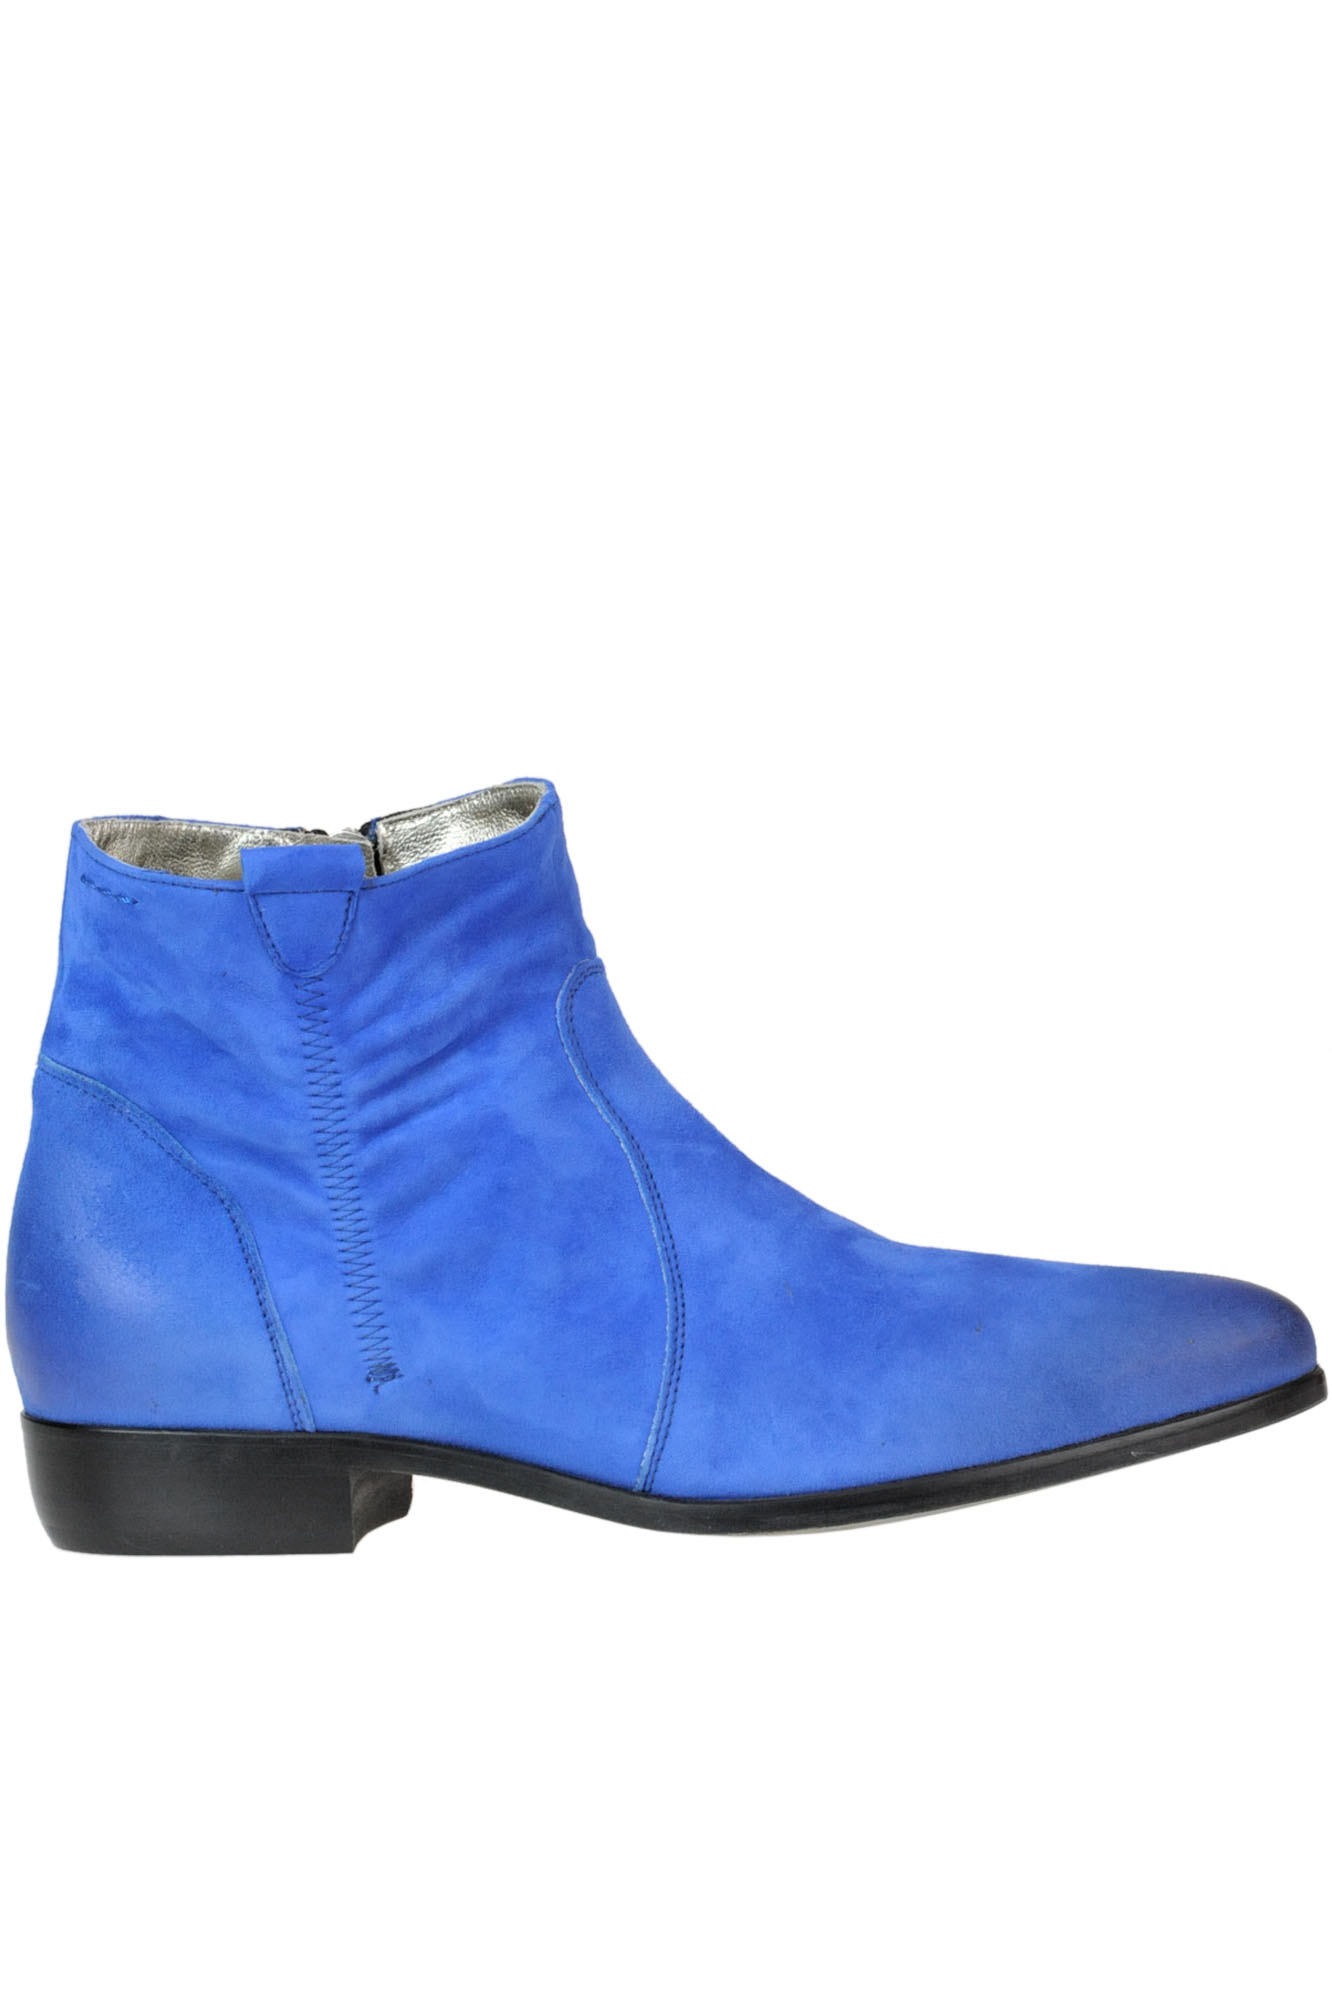 ALEXANDER HOTTO Suede Ankle-Boots in Electric Blue